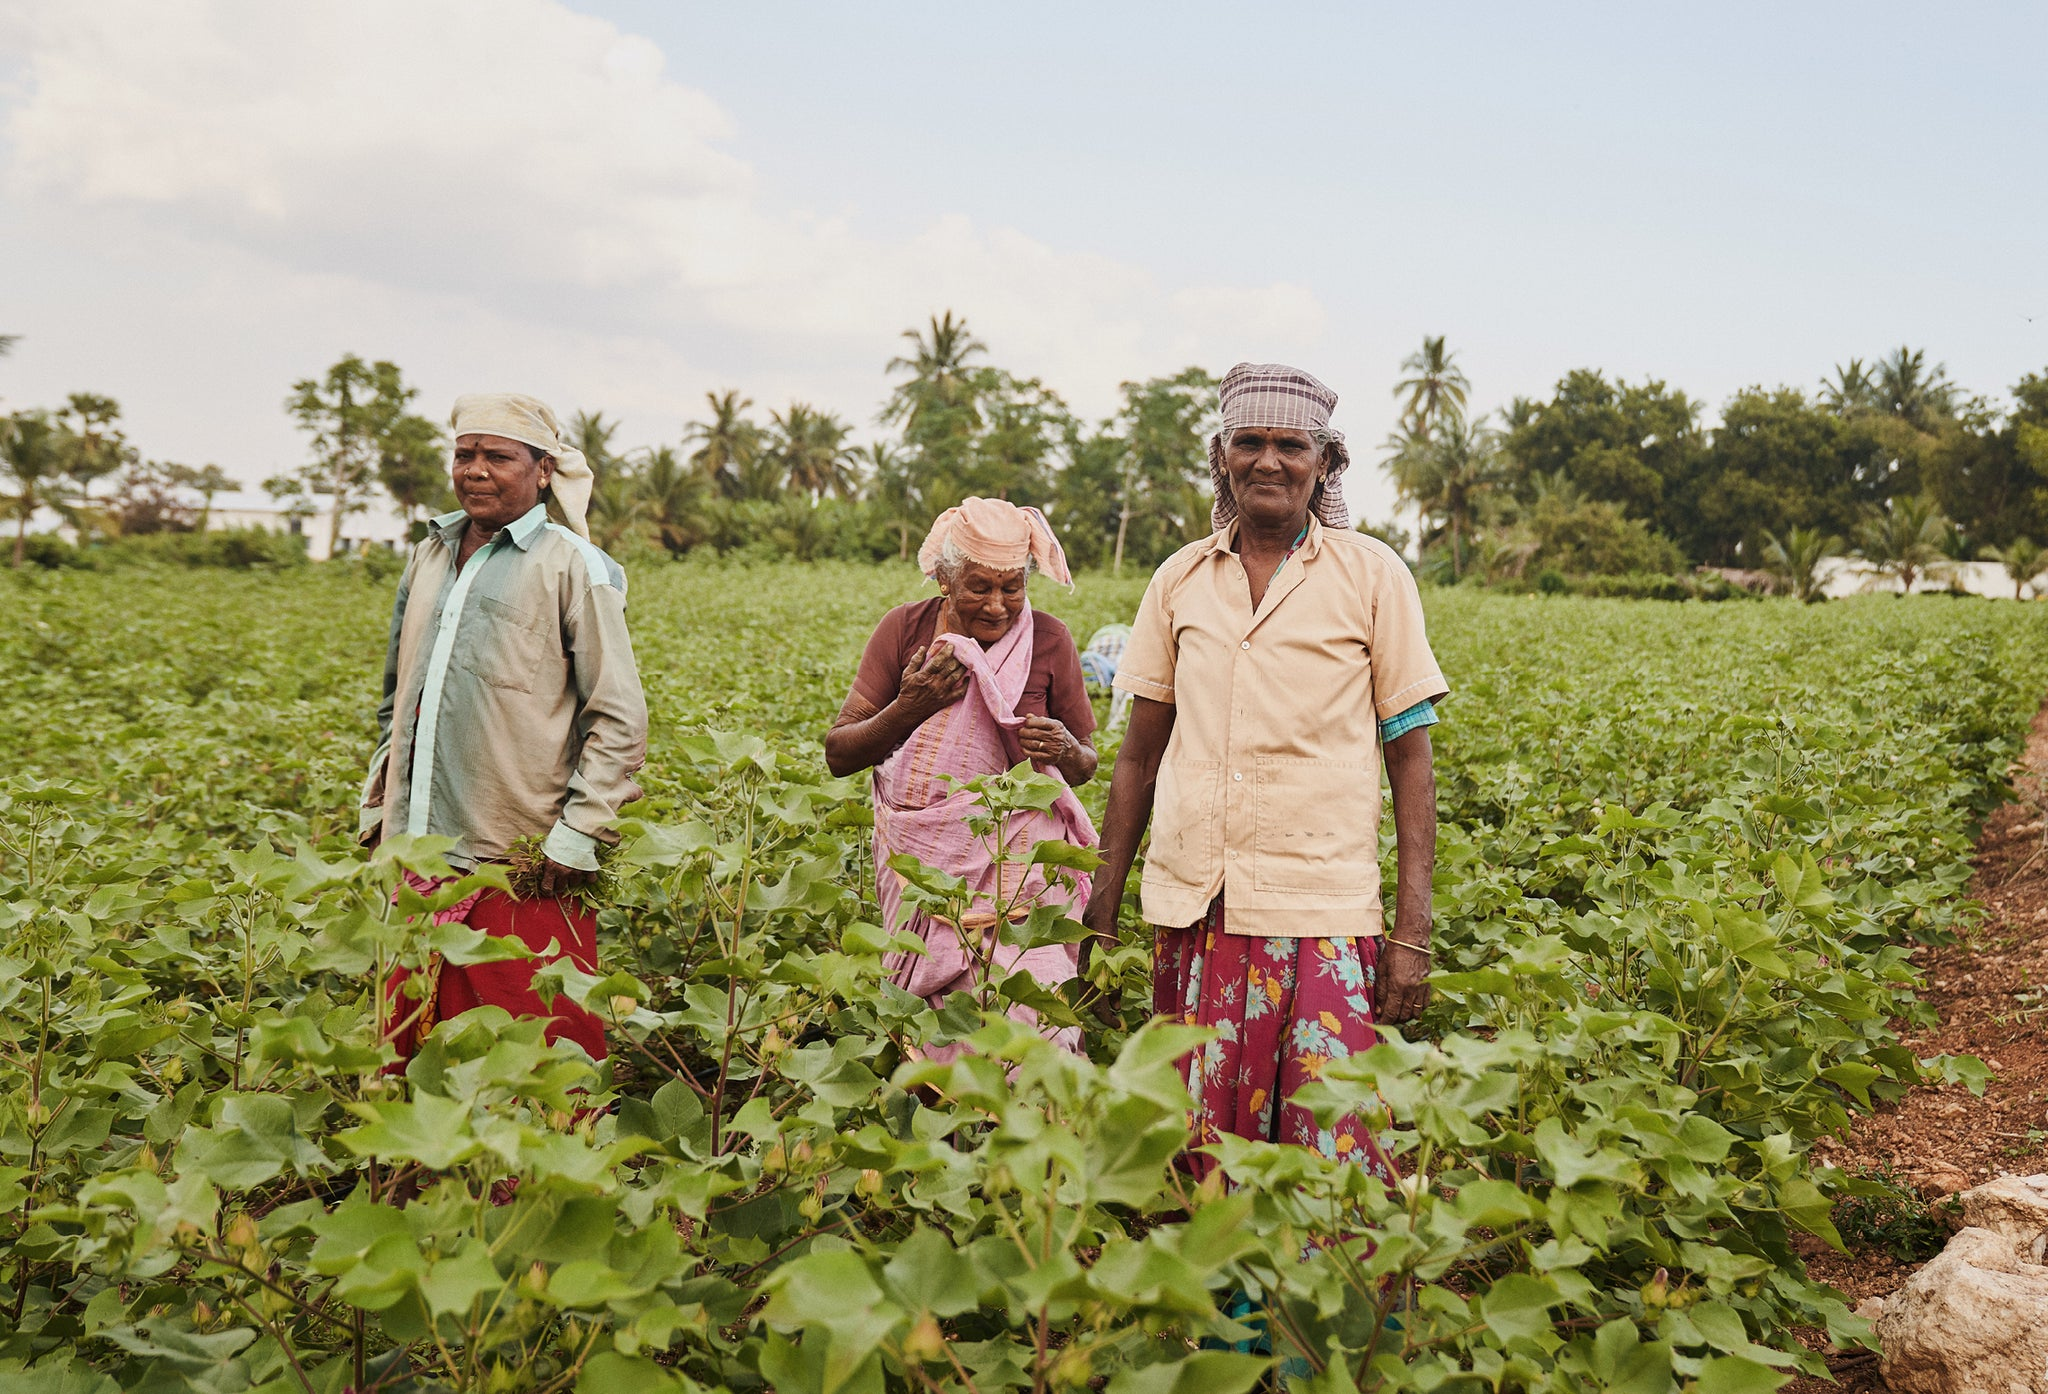 The group of women who helped plant the green gram and control the weeds